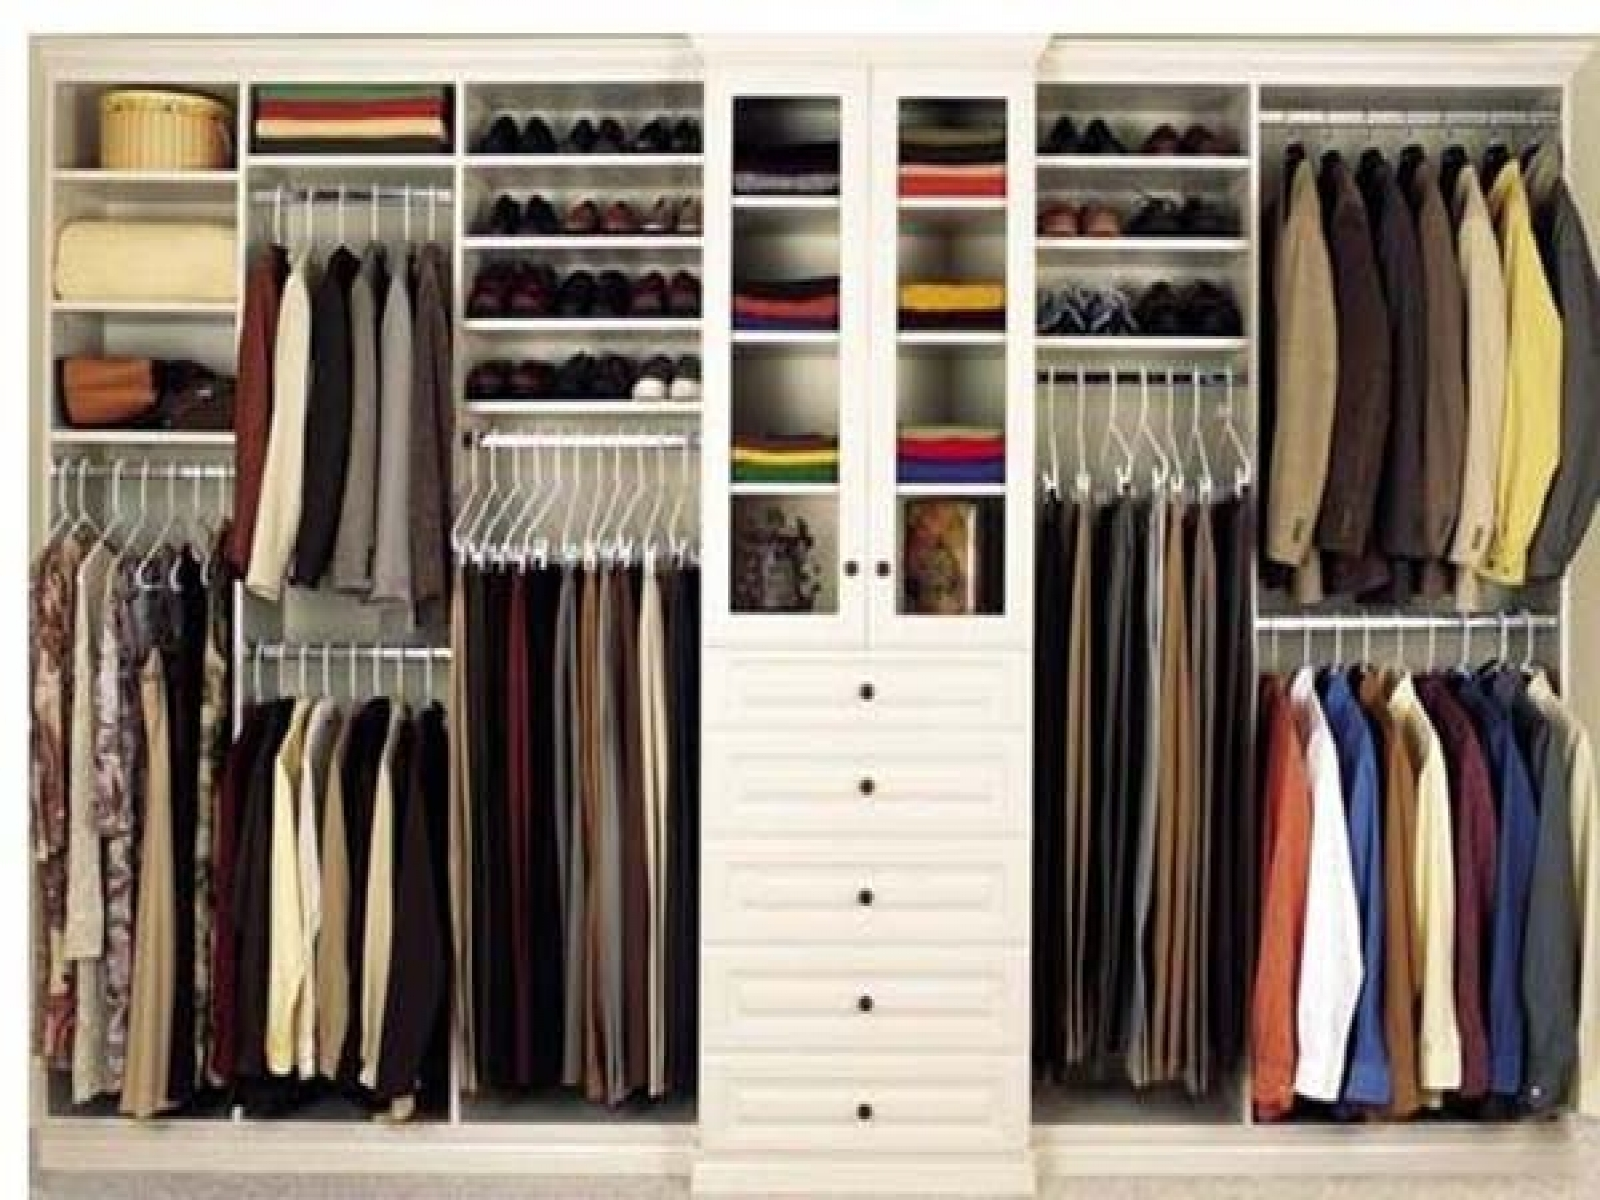 Bedroom Wardrobes Storages Throughout Most Recently Released Closet Storage : Cheap Bedroom Storage Ideas Clothing Storage (View 5 of 15)